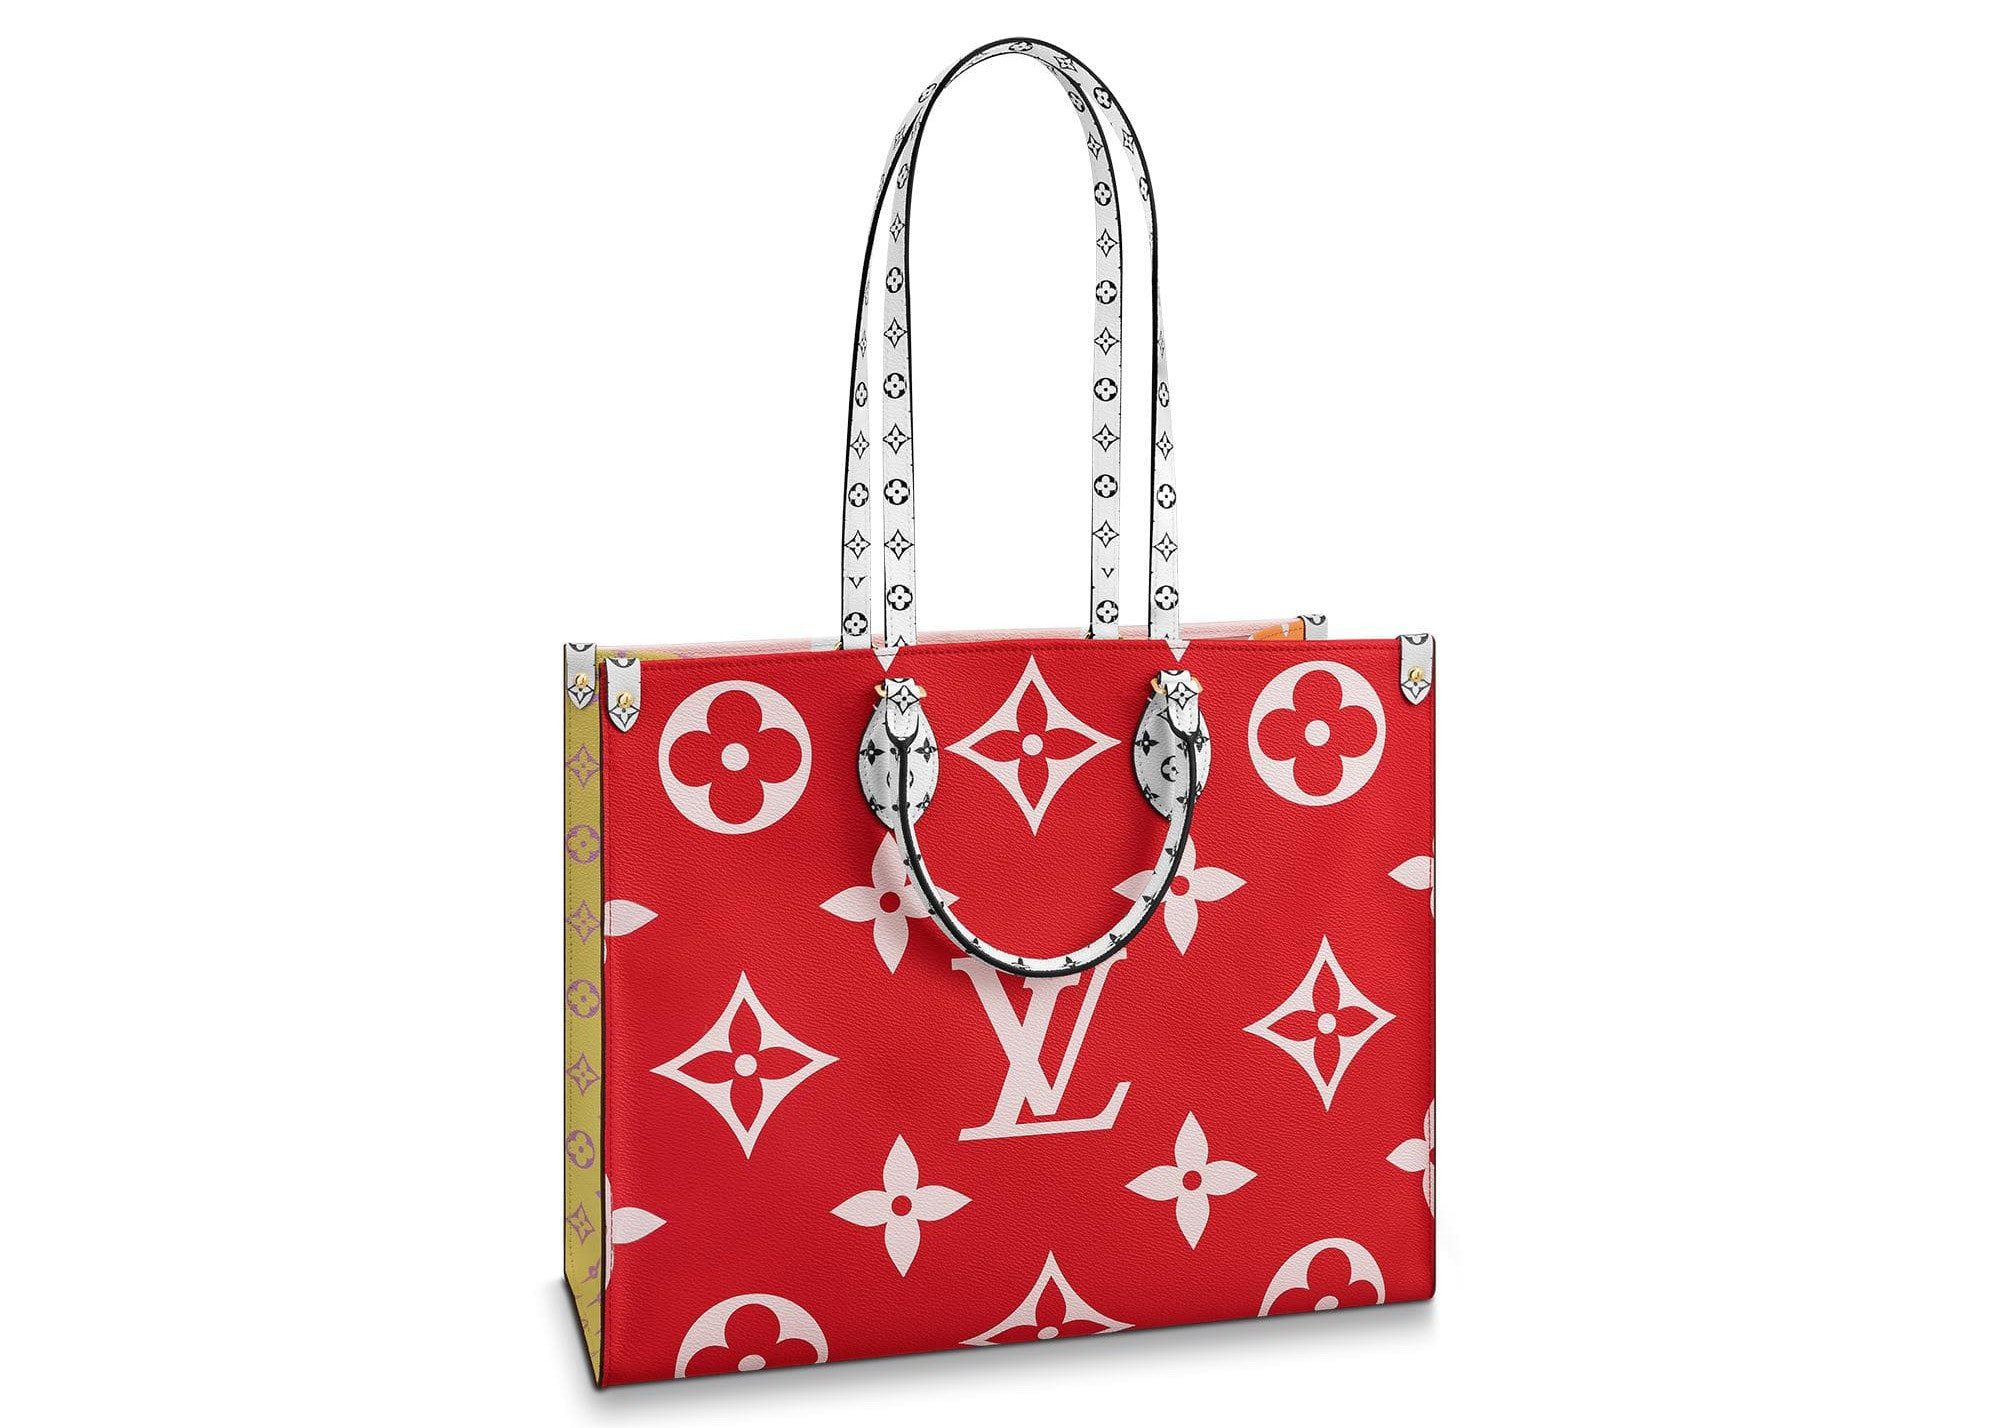 Louis Vuitton Onthego Monogram Giant Red/Pink